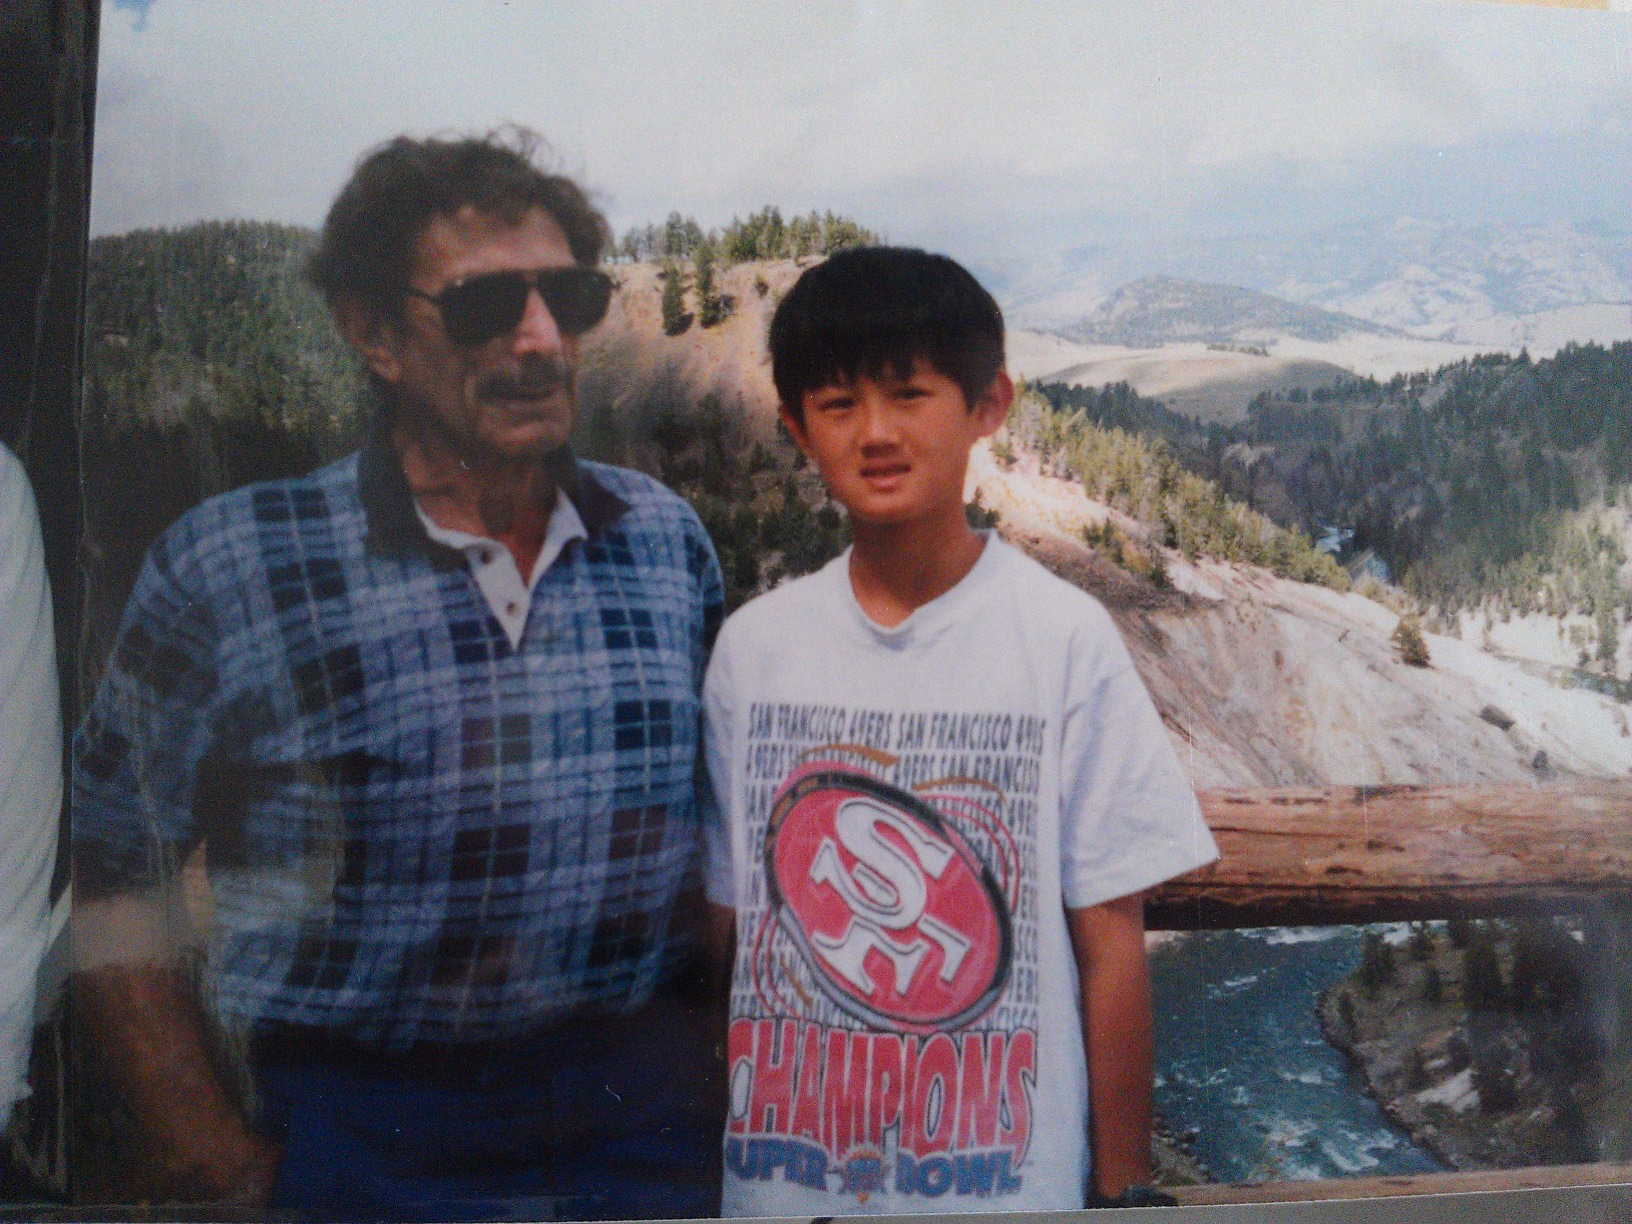 Chou and his dad.